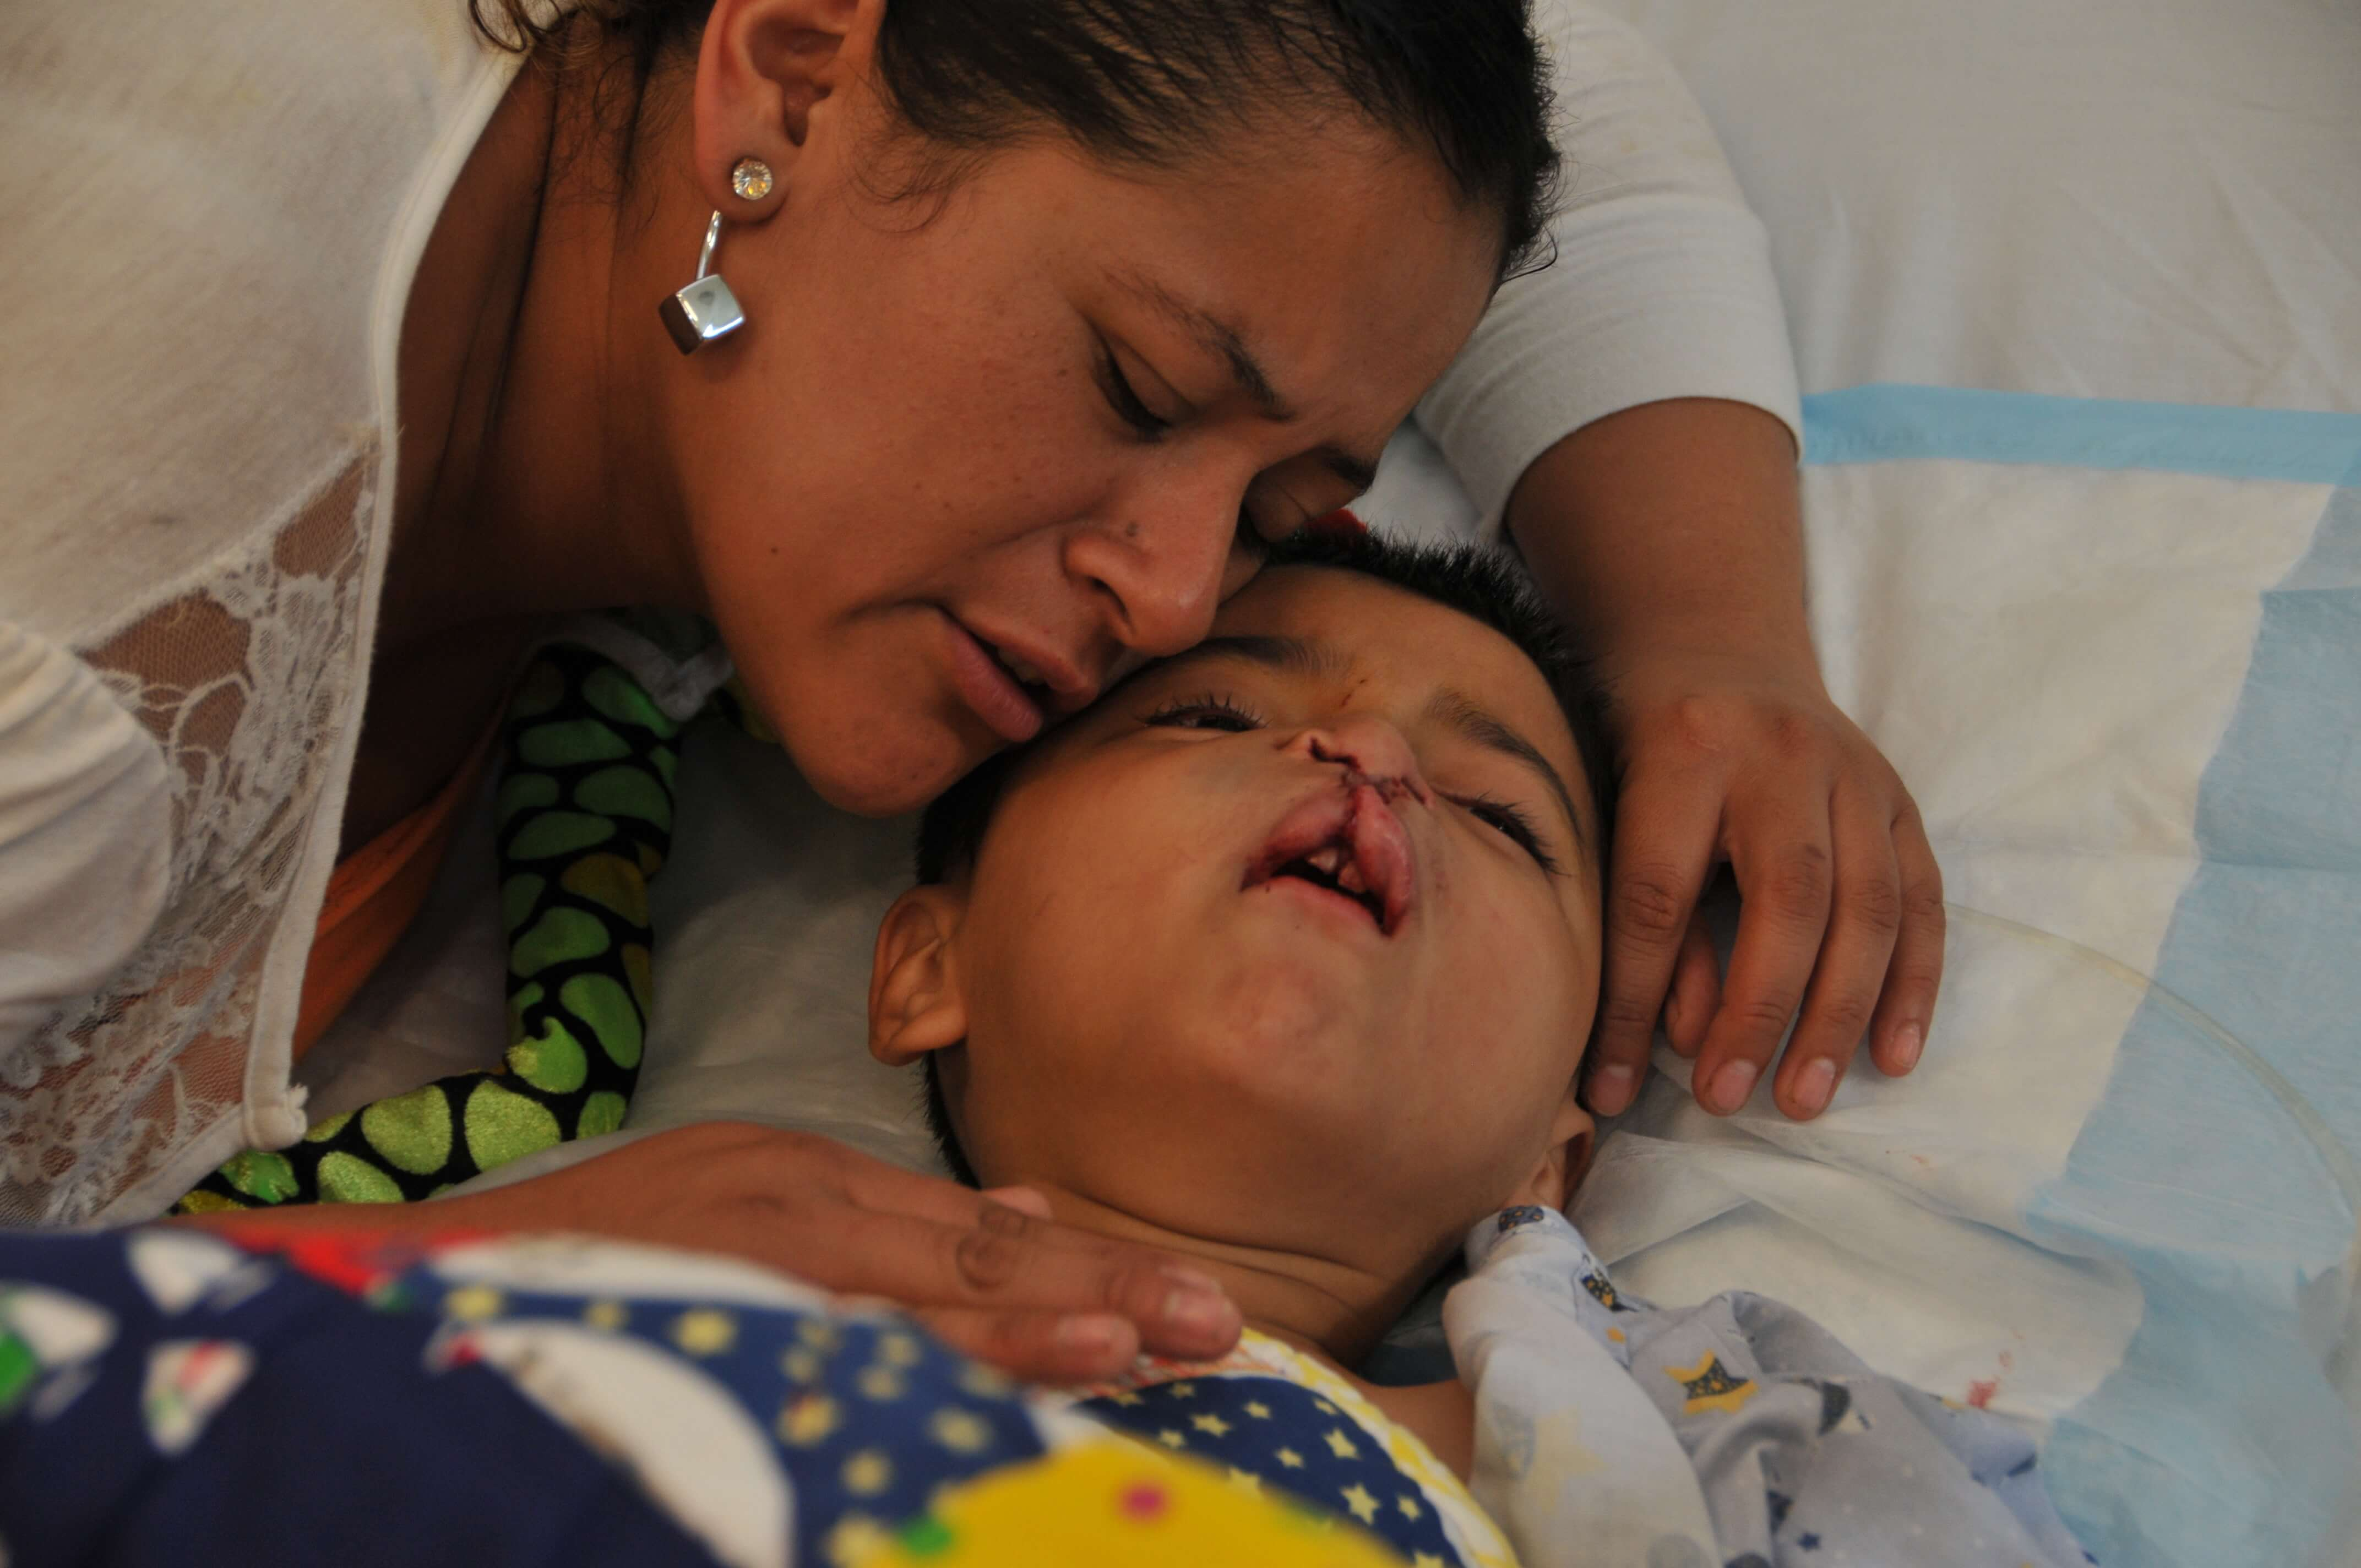 A mother comforts her son after surgery.